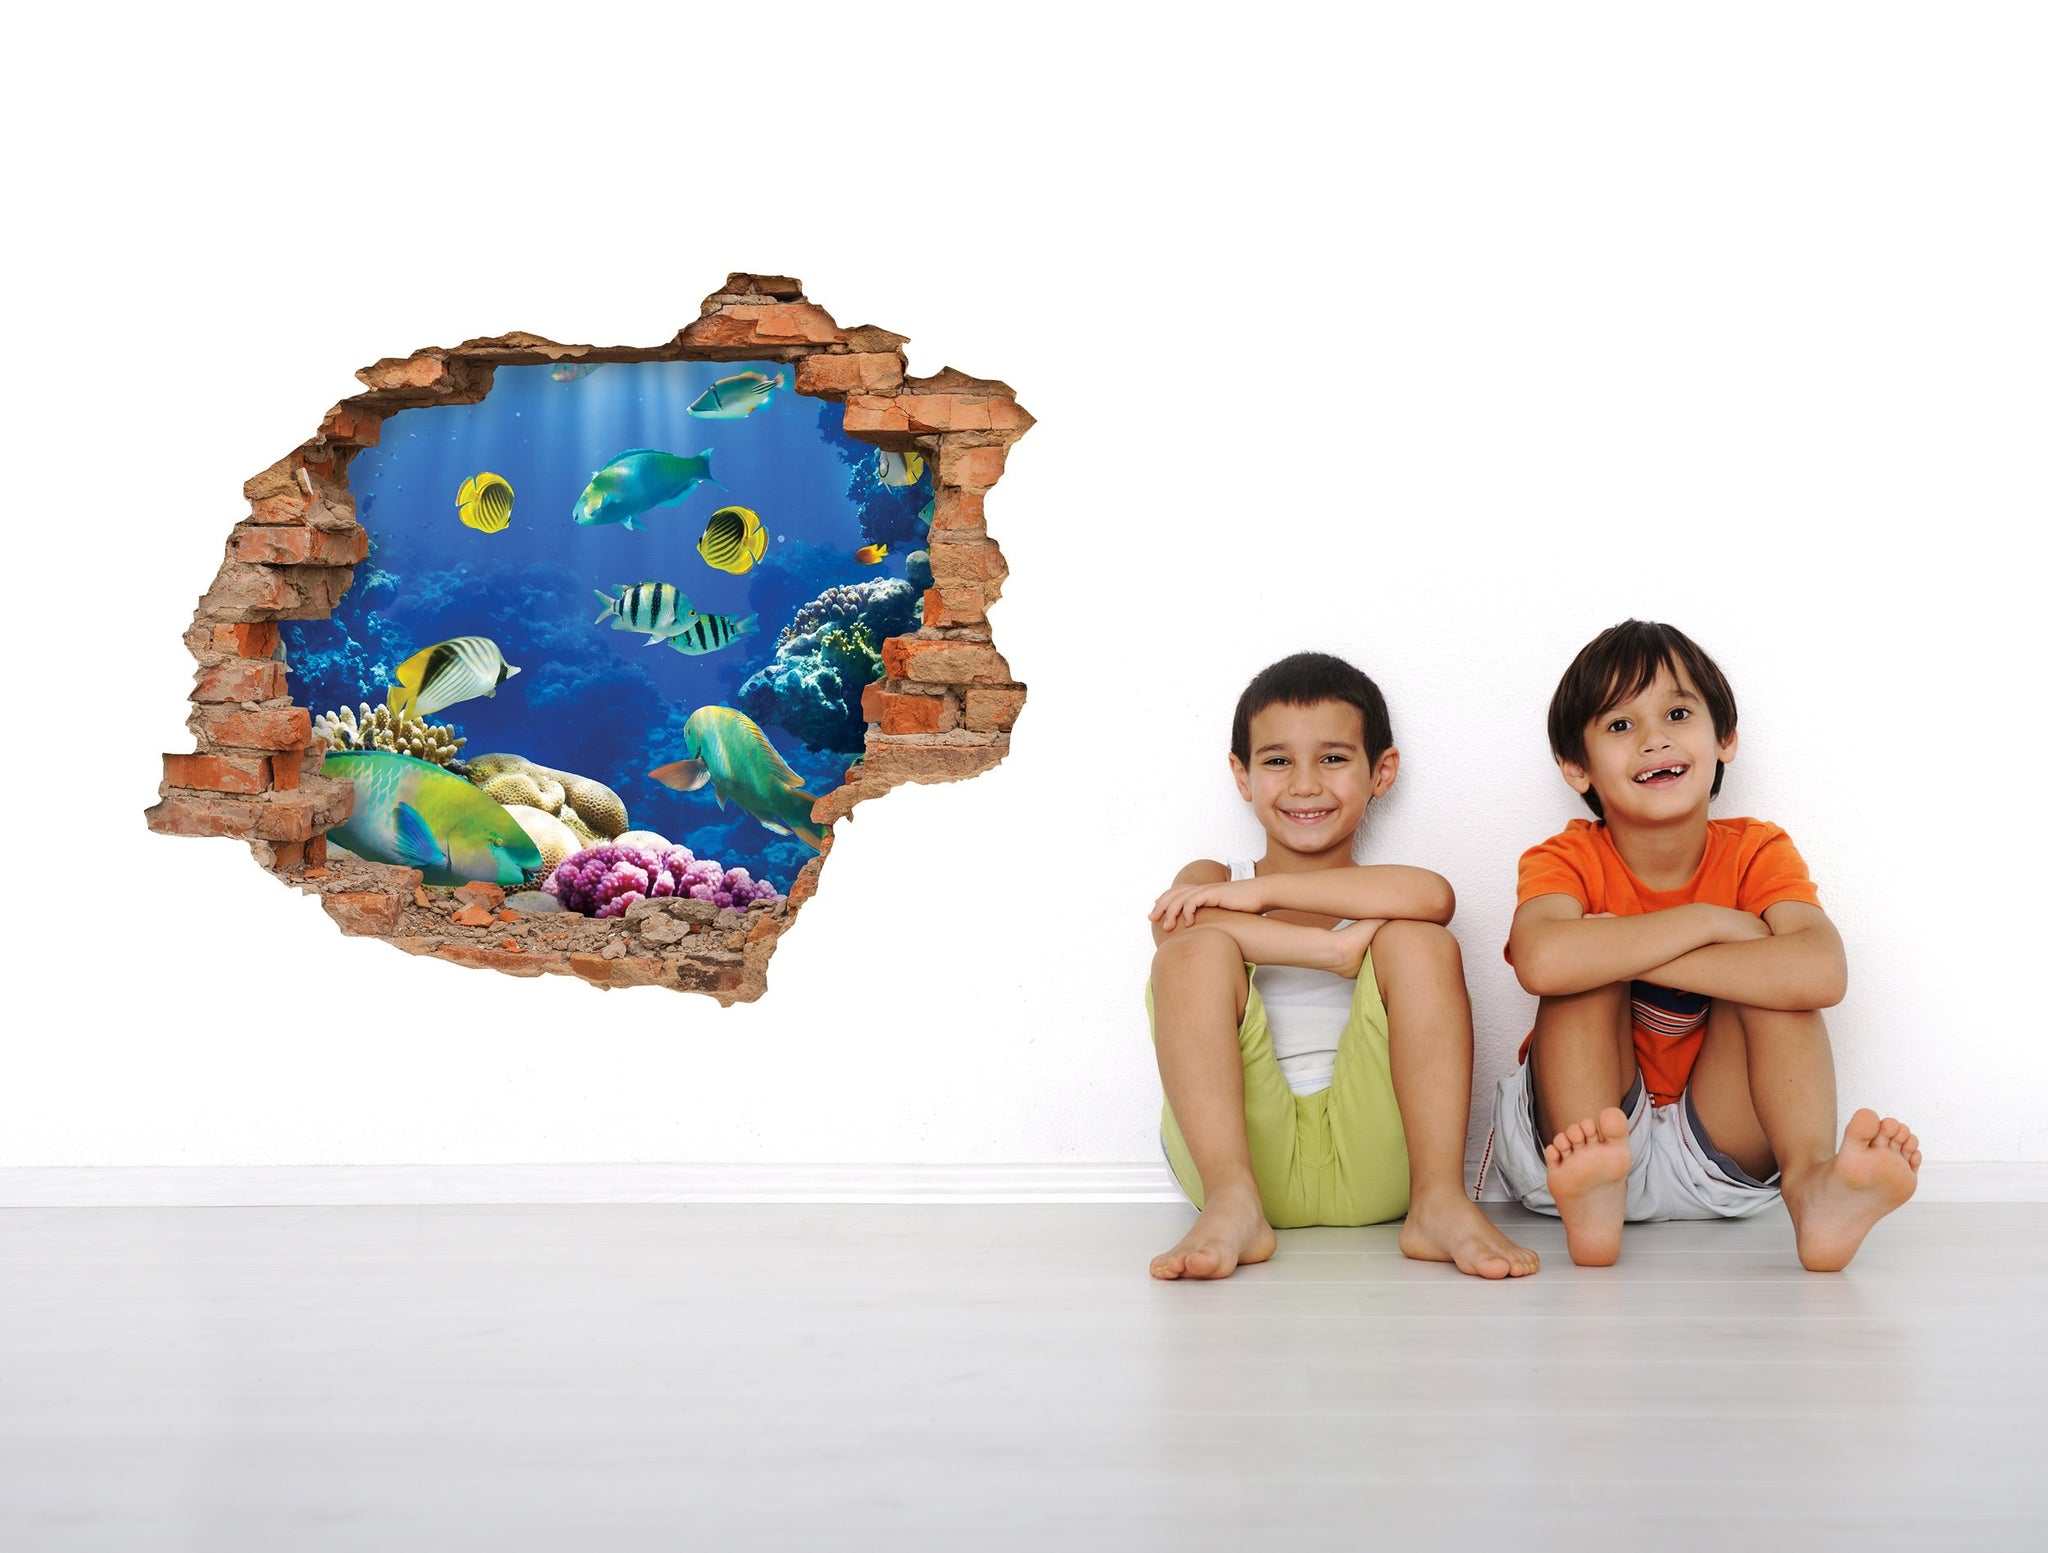 3D Art Wall stickers Fish tank - 3D022 - Art Life Decor